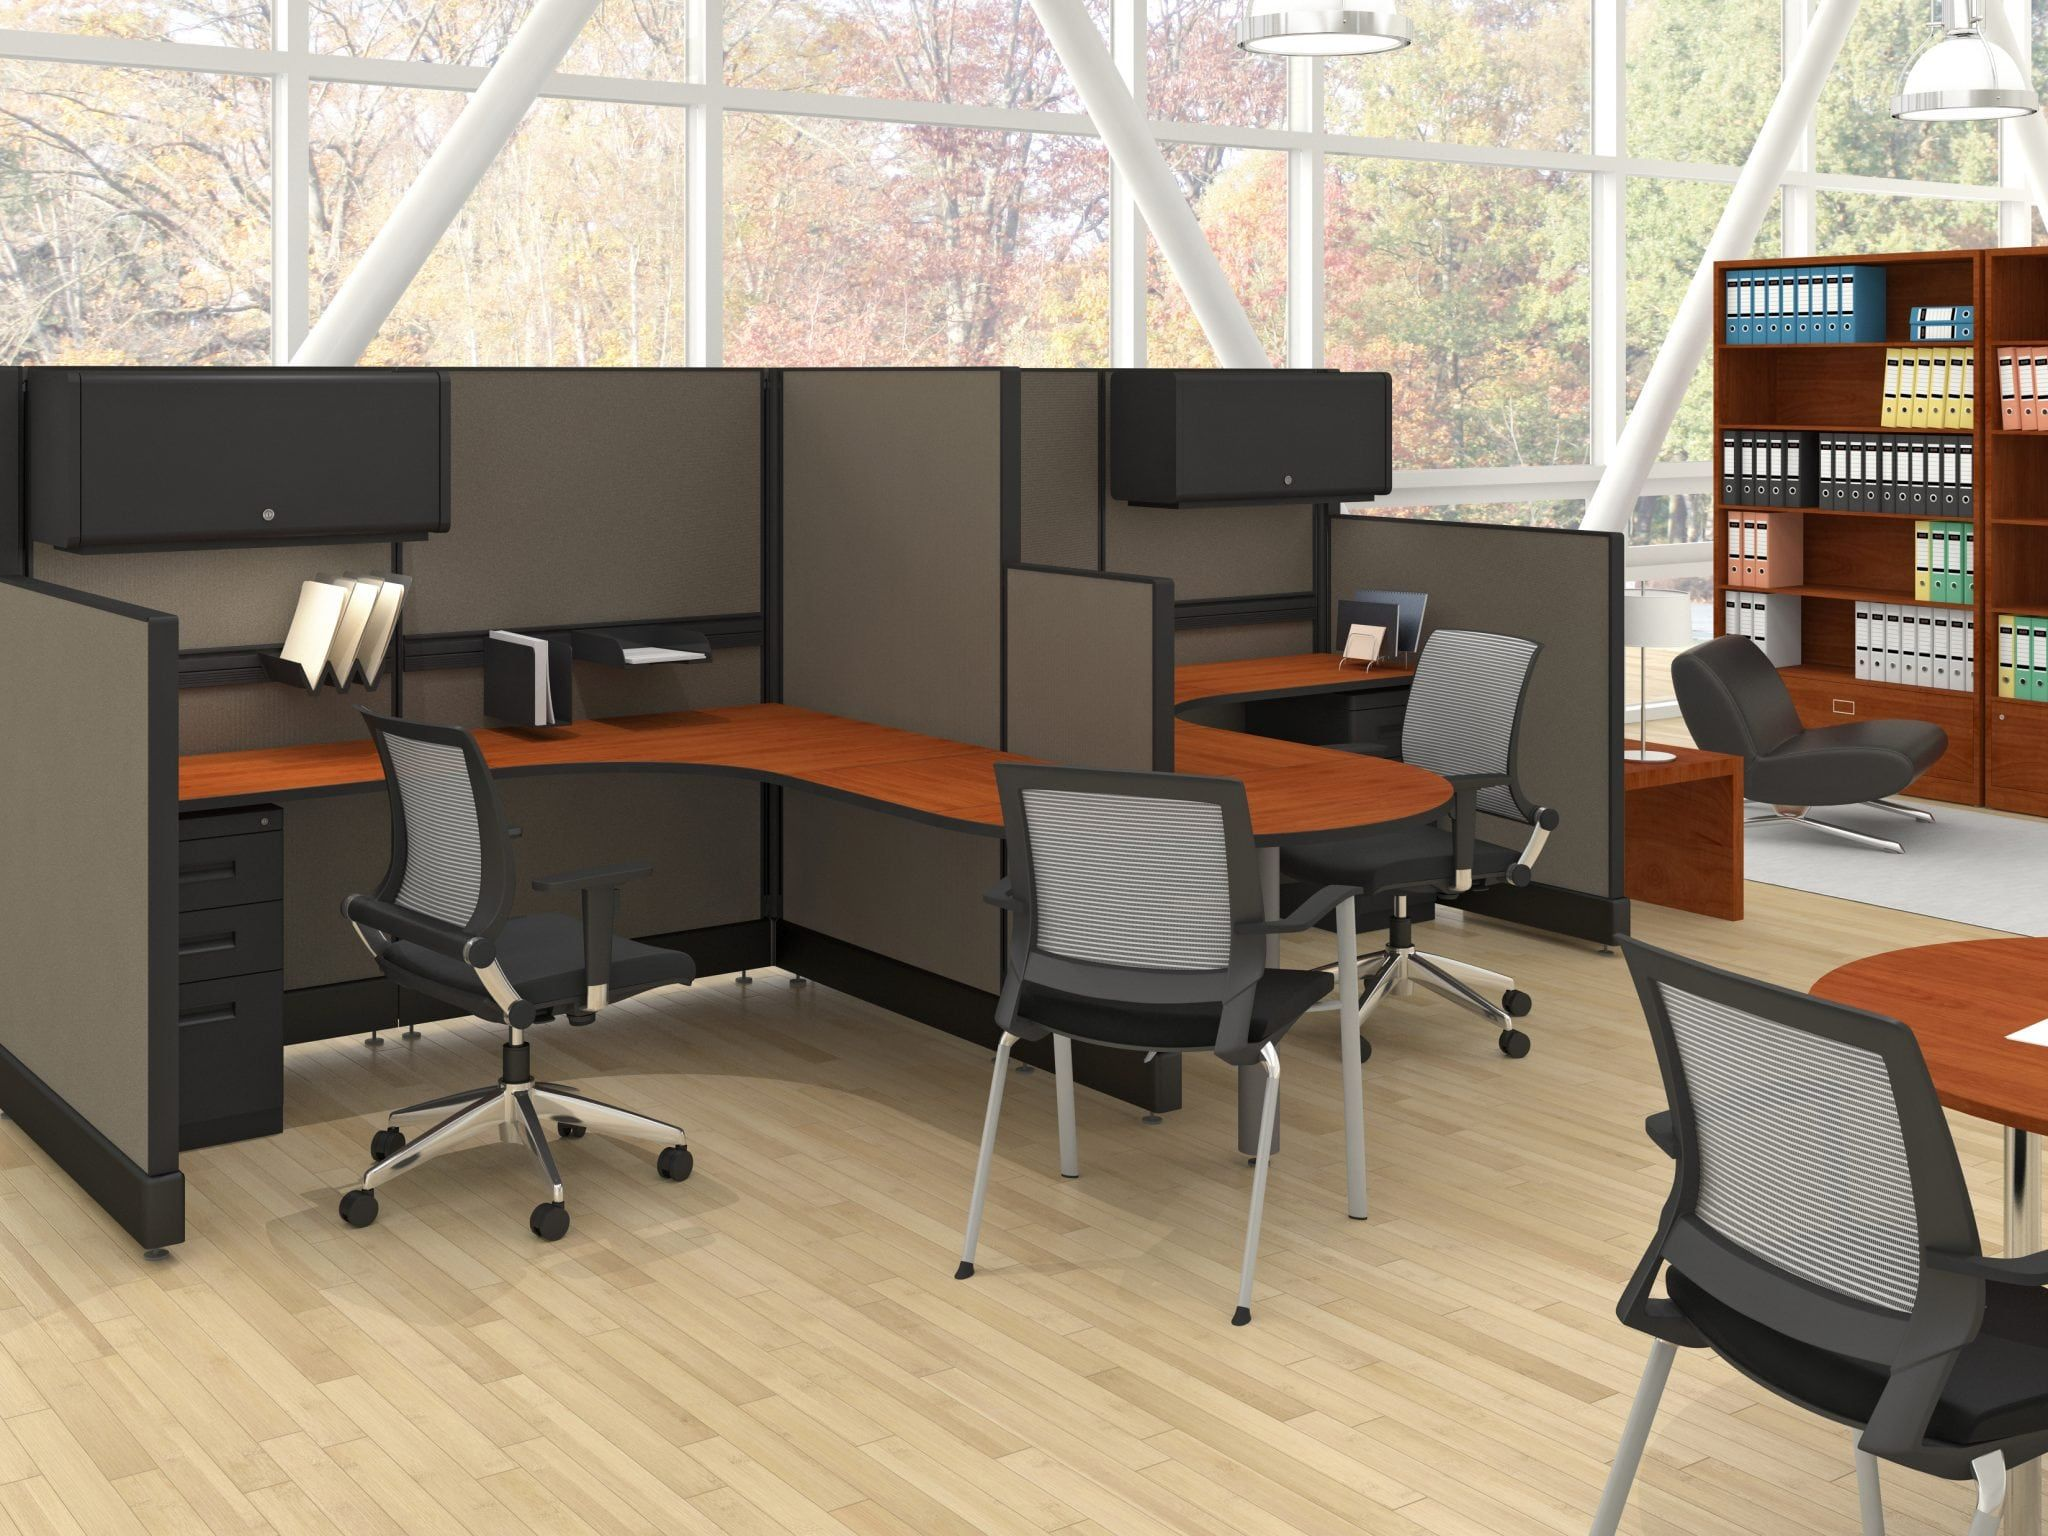 We Sell Quicktime Cubicles New And Used Visit Our Website Or